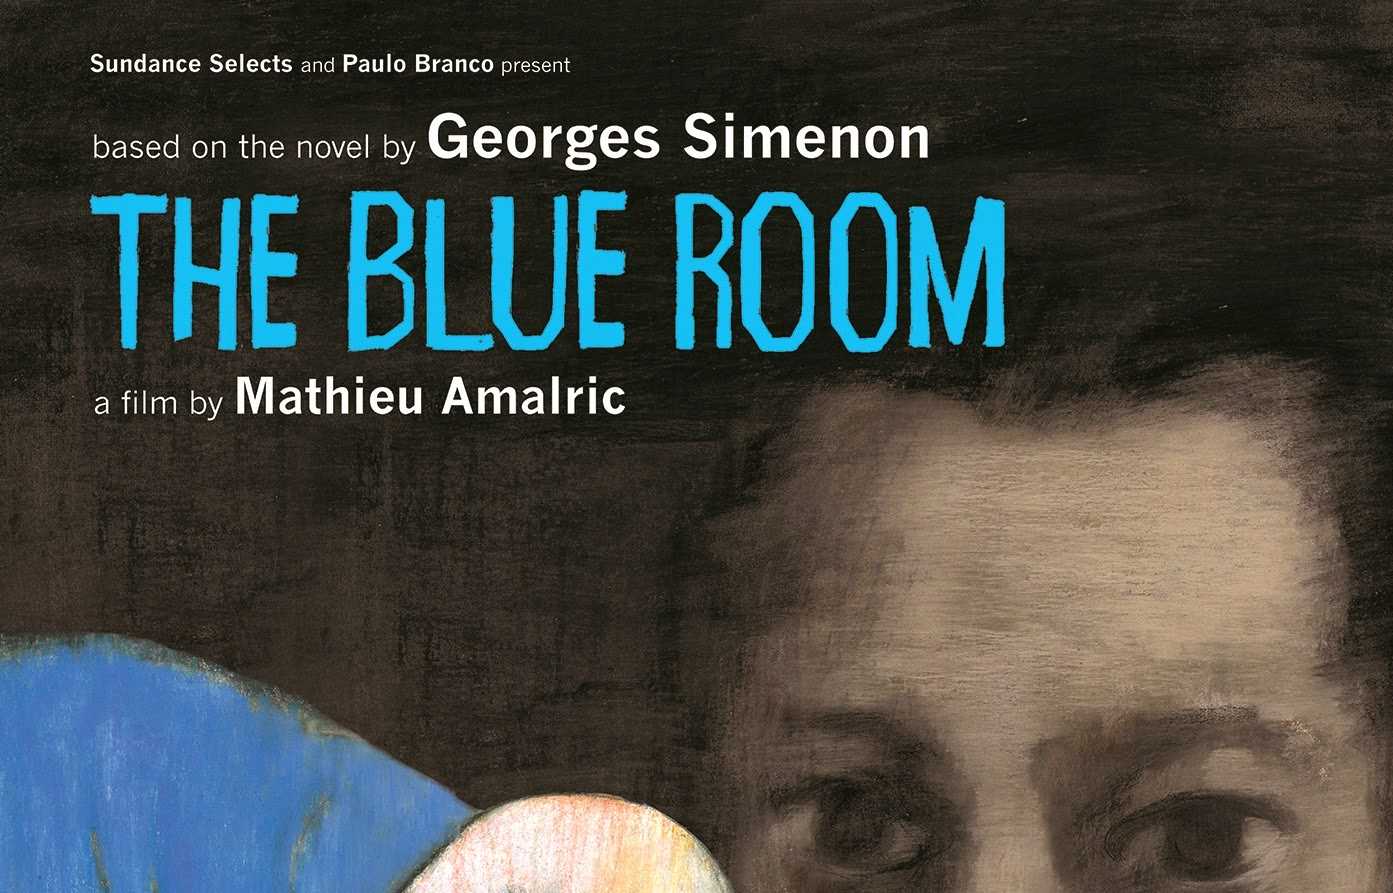 La Chambre Bleue Film Online The Blue Room La Chambre Bleue 2014 Let S All Do The